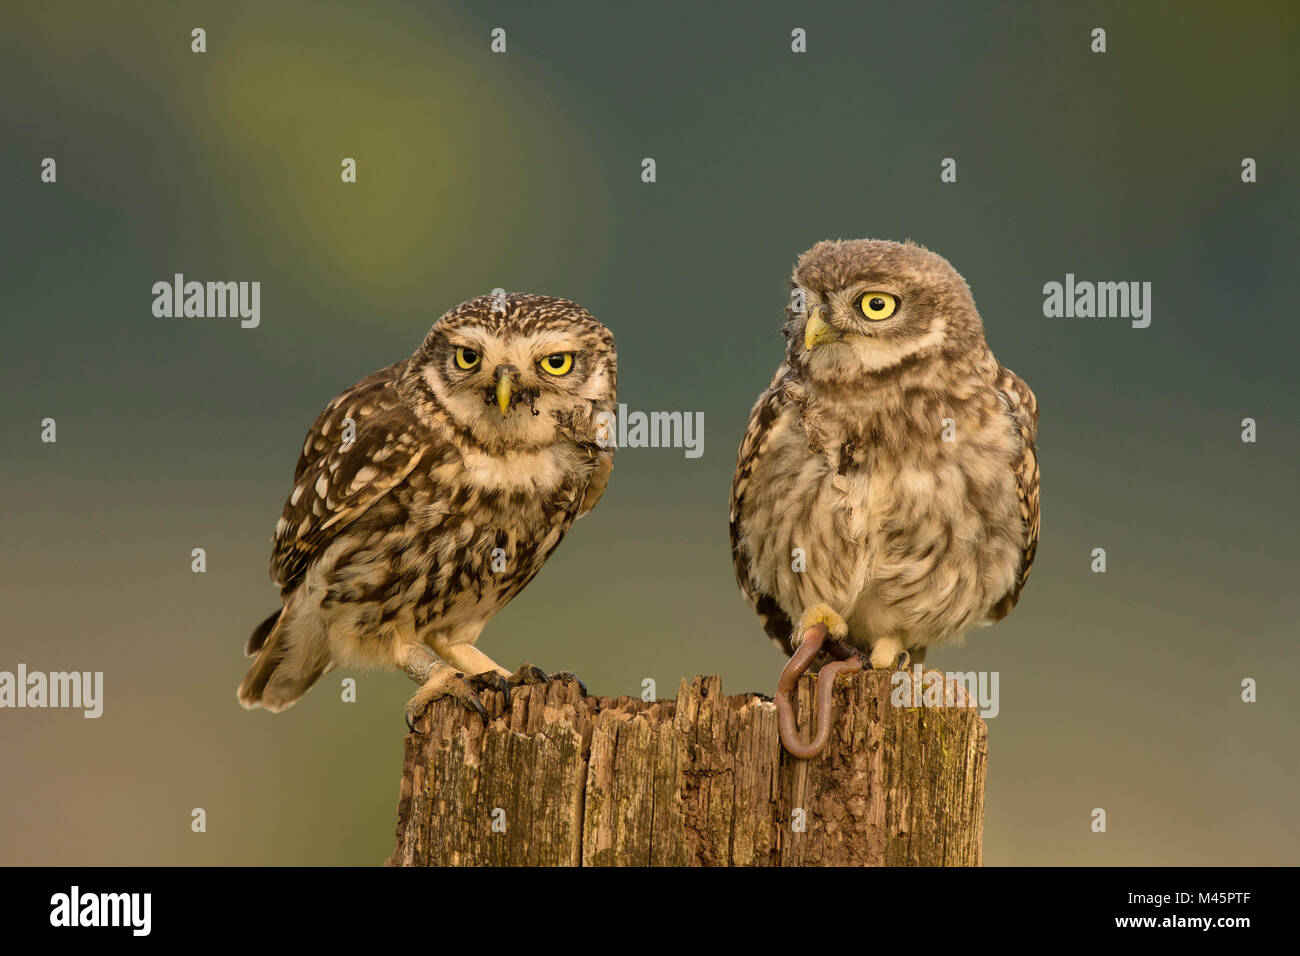 Two Little owls (Athene noctua),old animal and young animal sit on tree stump,Rhineland-Palatinate,Germany - Stock Image